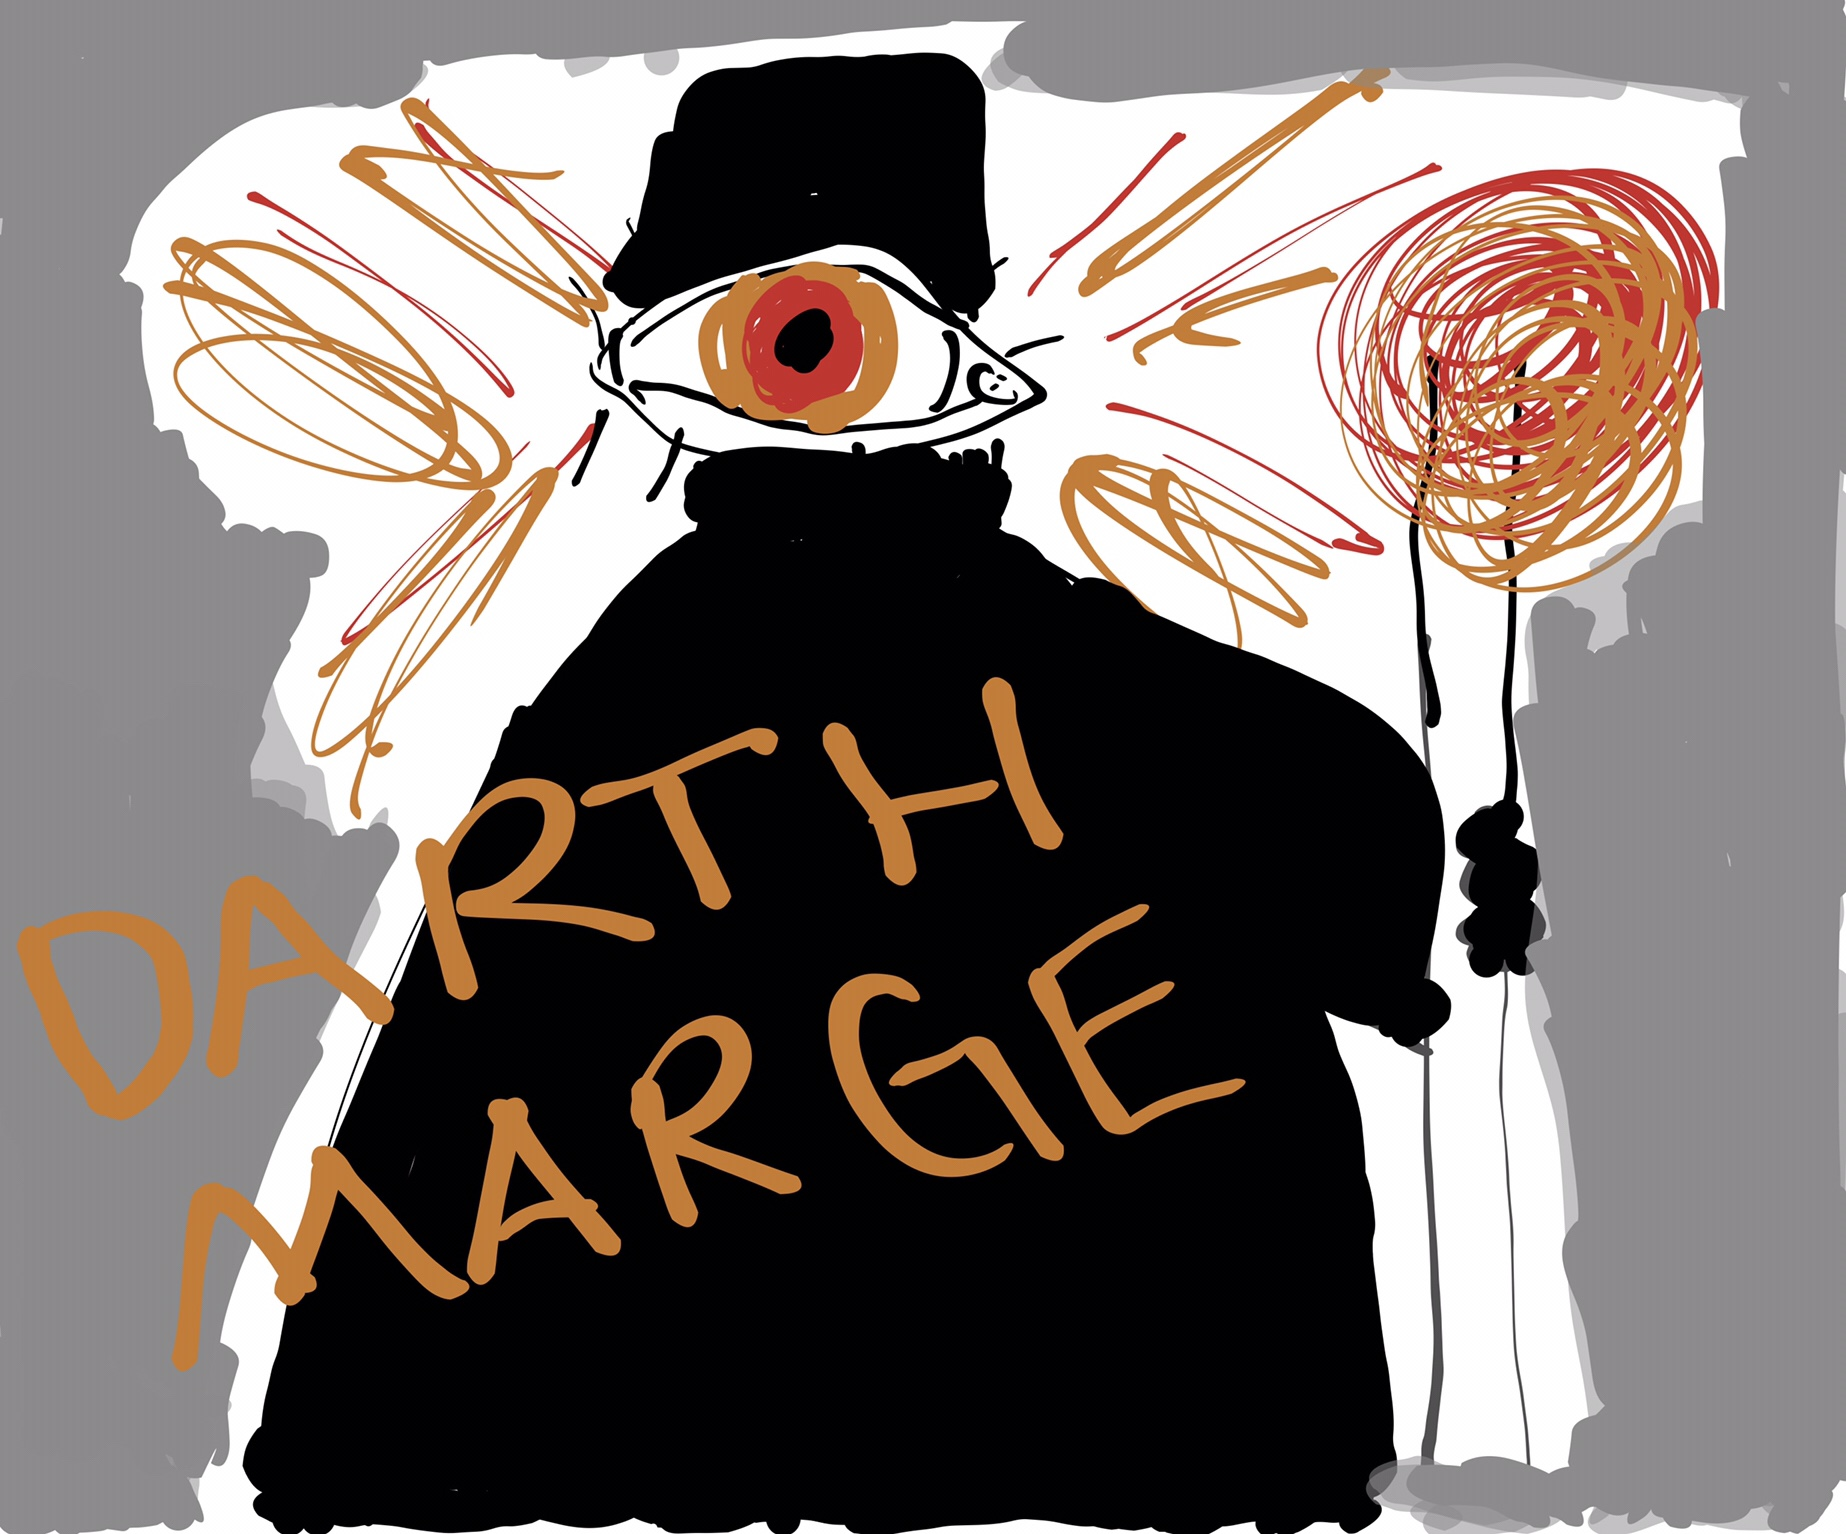 An image titled 'DARTH MARGE'. Against a grey background stands a black robed figure wearing some kind of rectangular helmet with a single, huge, flaming eye where the face should be. The figure holds a flaming staff and orange flames shoot out of its head.